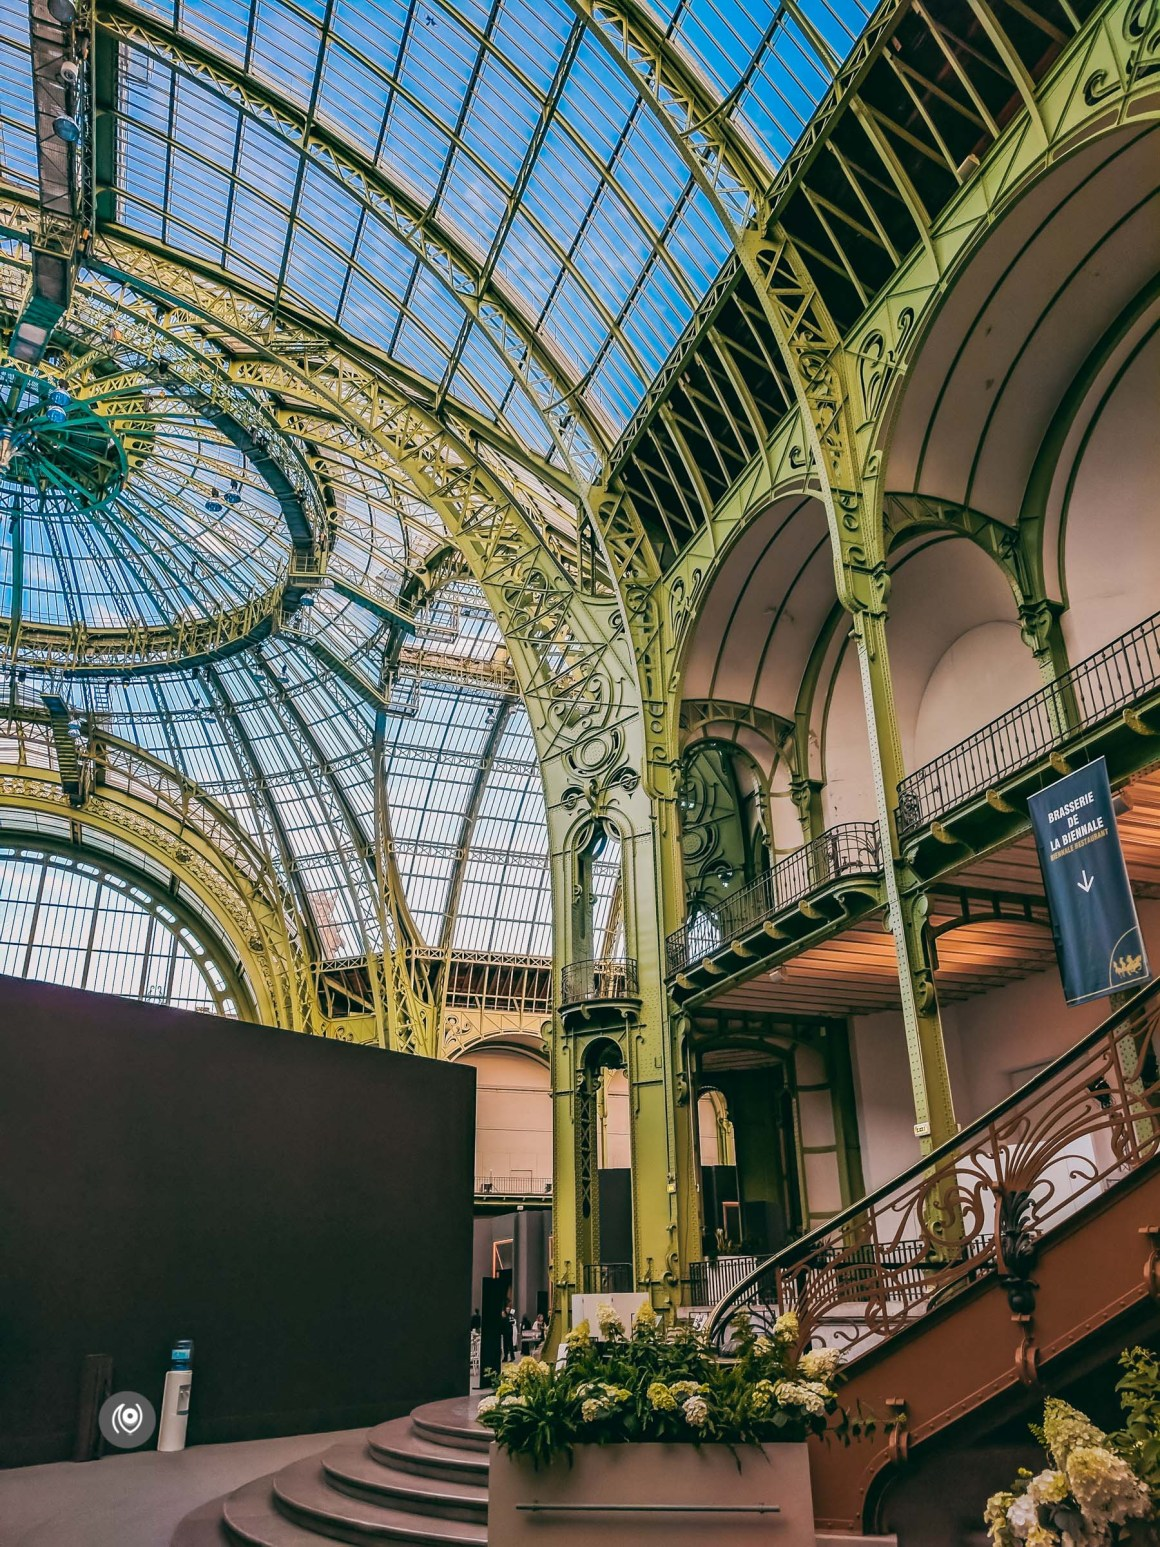 #EyesForDestinations, #EyesForLuxury, #EyesForParis, #NAINAxLaBiennaleParis, Annual, Antiques, art, art blogger, Art photographer, Artistic, Biennale, Biennale des Antiquaires, Collectors, Cultural Desitnation, Culture, Exhibitors, EyesForFrance, France, Haute Horlogerie, jewellery, La Paris Biennale, lifestyle blogger, lifestyle photographer, luxury blogger, luxury photographer, naina redhu, naina.co, Paris, Paris Biennale, The Grand Palais, travel blogger, travel photographer, Vernissage, WishBoxStudio, The Syndicat National des Antiquaires, Le Syndicate National des Antiquaires